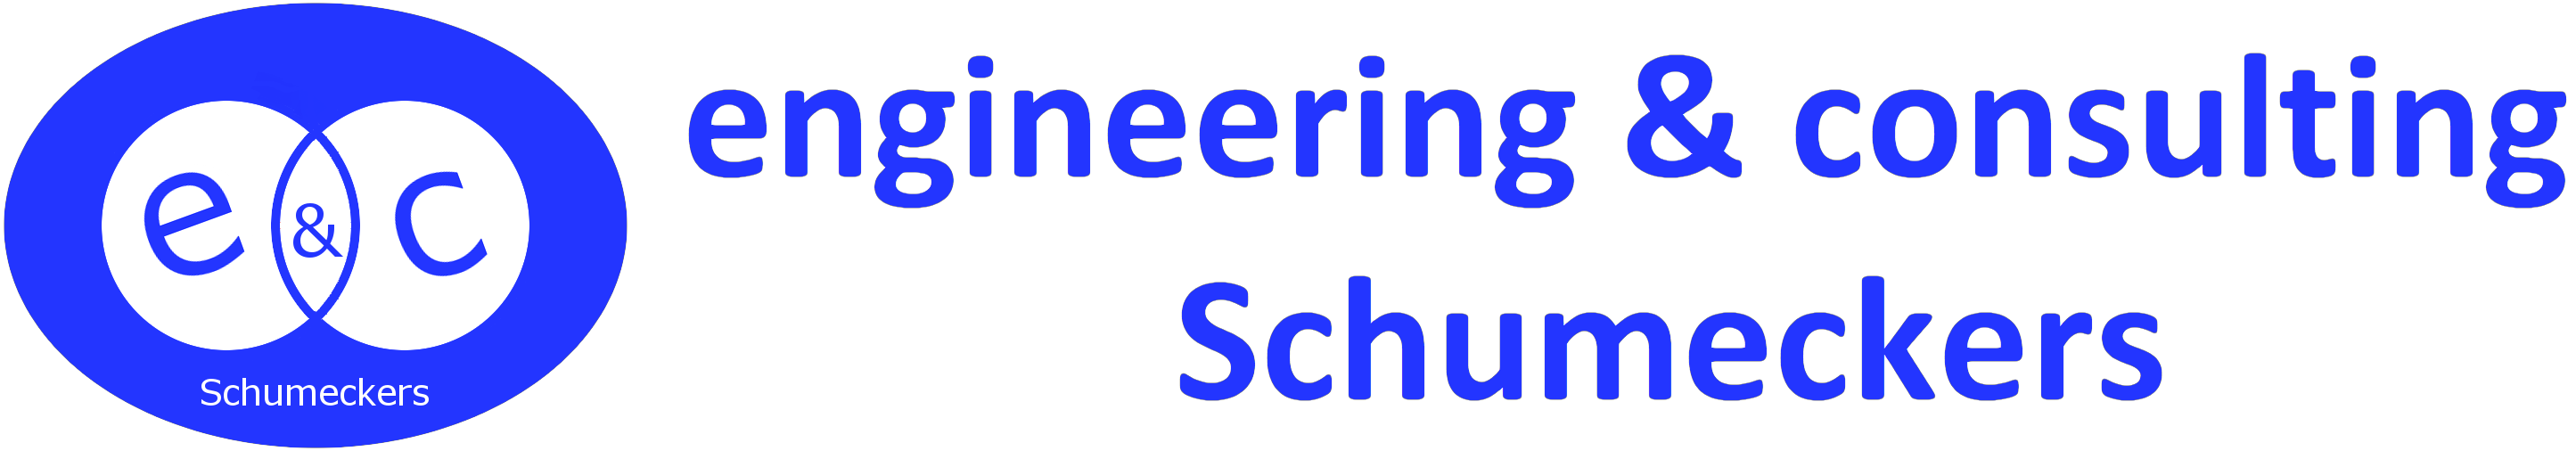 engineering & consulting Schumeckers